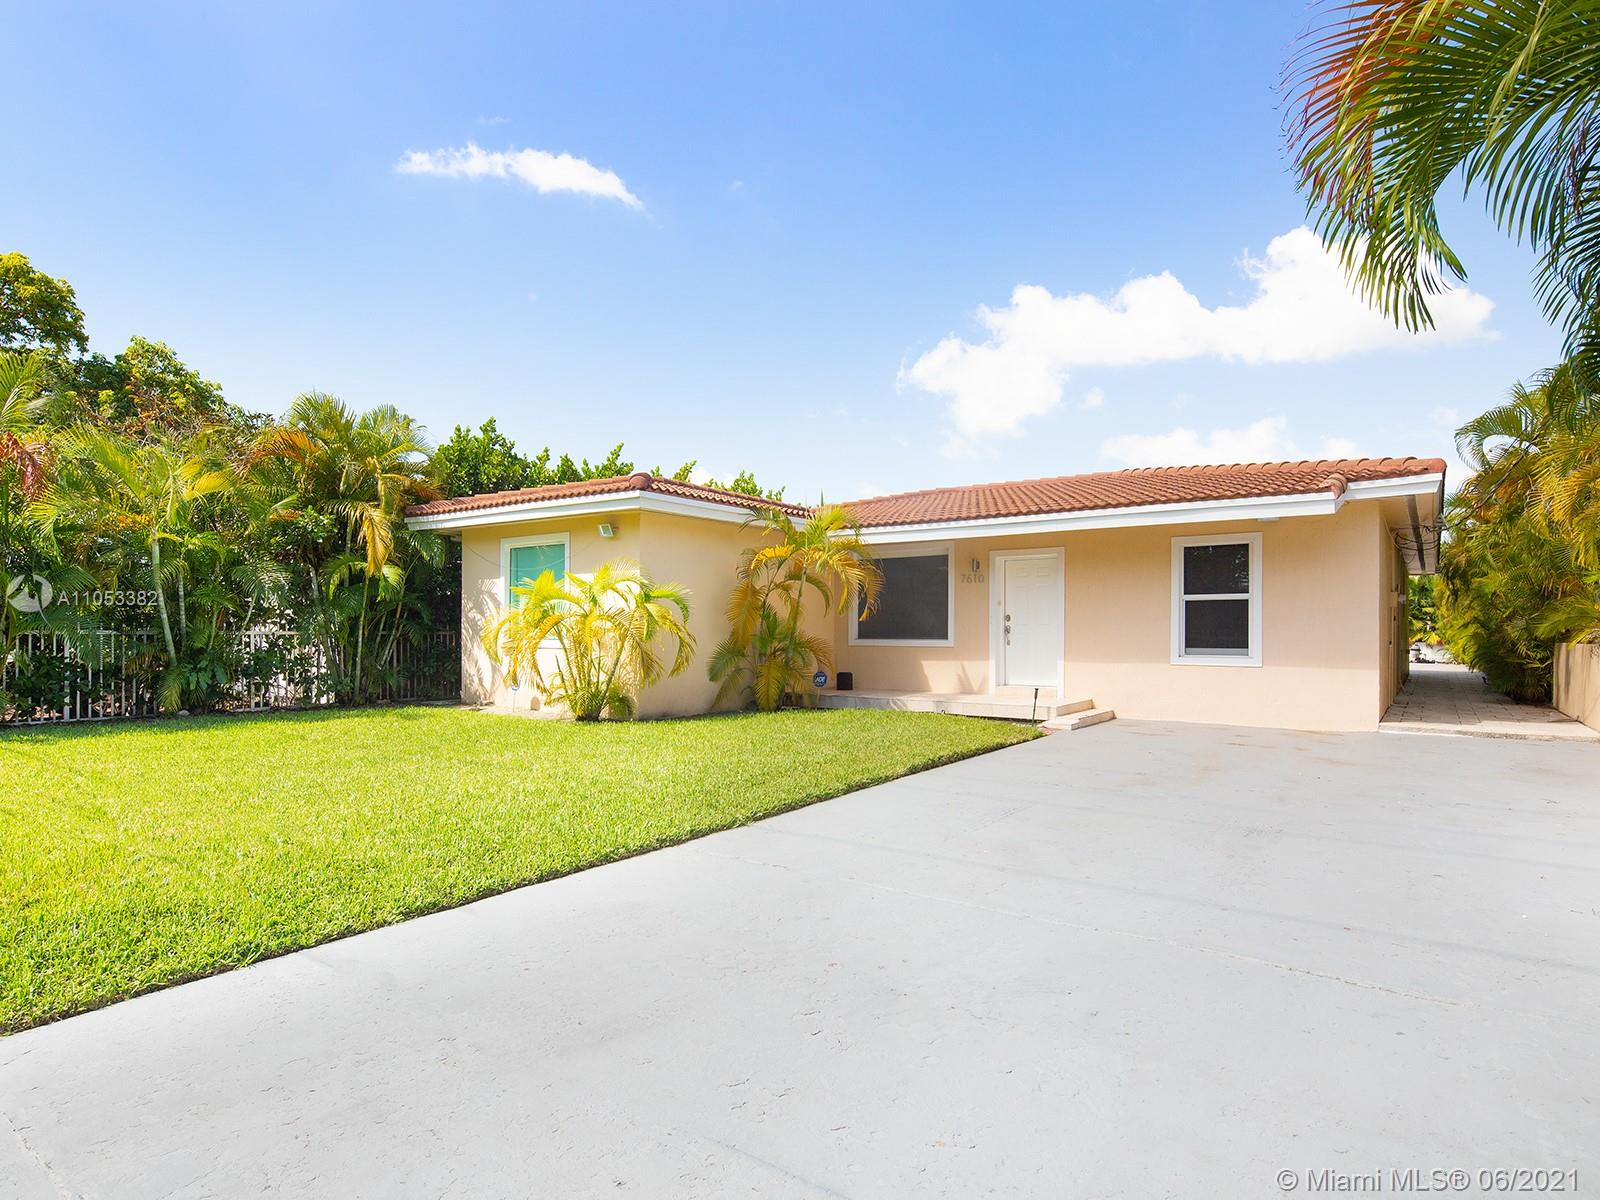 Do not miss the opportunity to own this charming and completely remodeled house located in a very peaceful area of Miami Beach. This residence features 4 bedrooms, 3 full bathrooms, an open kitchen completely remodeled with Italian cabinetry, and a spacious living & dining room area from where you can appreciate the peaceful view of the canal.In the back of the house you can enjoy a beautiful swimming pool while overlooking the bay, park your own boat and have access to the ocean with no fixed bridges.This residence is perfectly located in a very quiet area but just a few minutes from Bal Harbour Shops, South Beach, and tons of amazing restaurants.